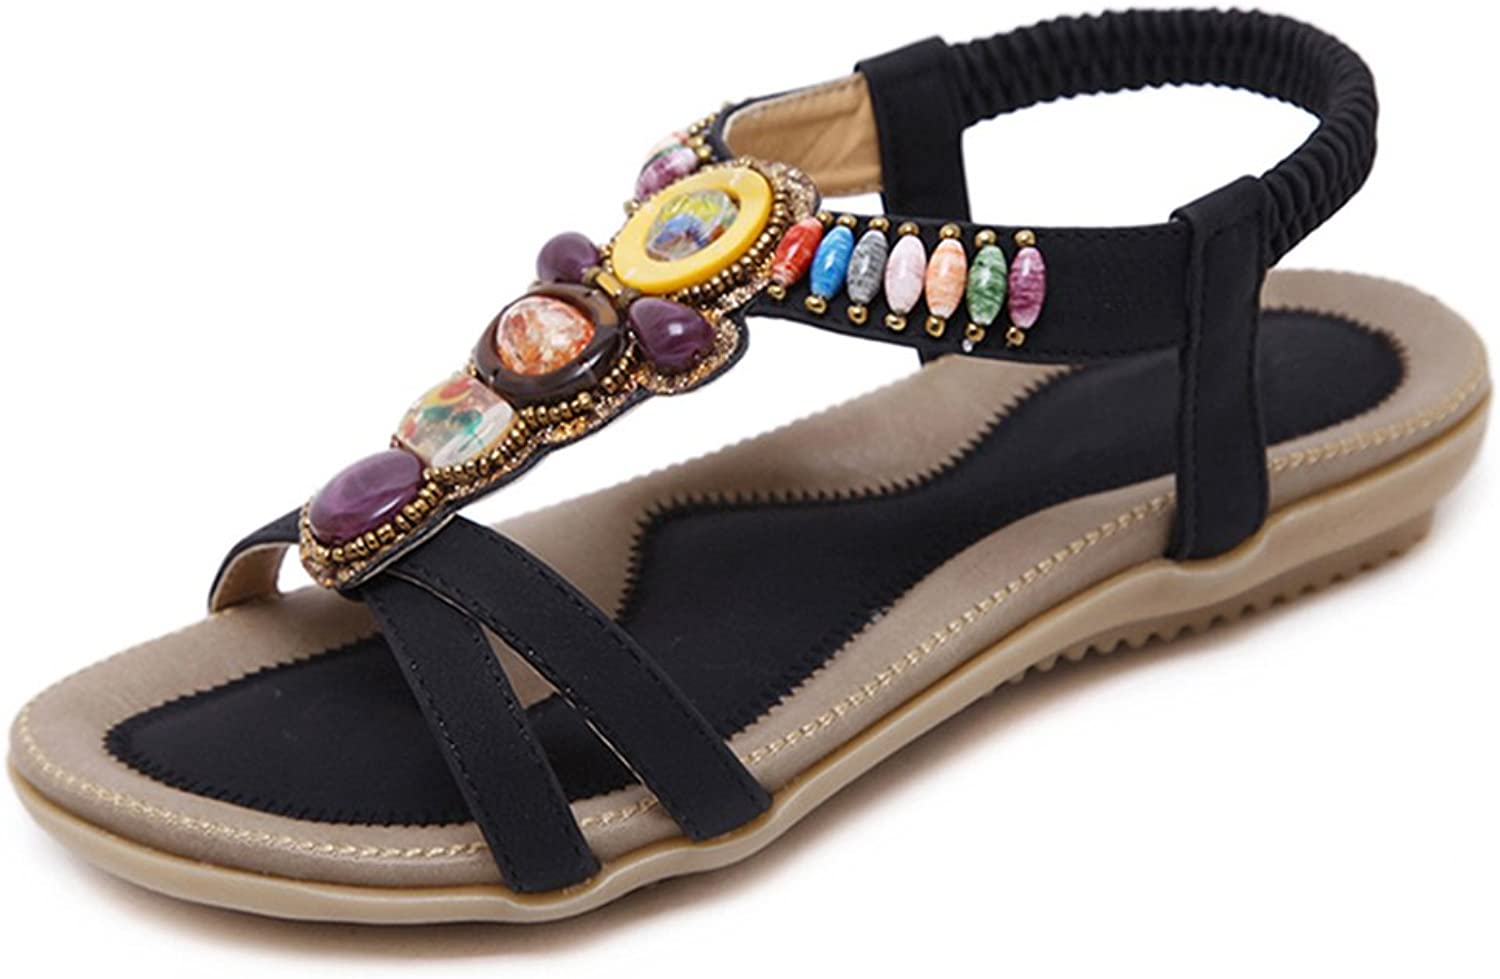 Tuoup Women's Jeweled Leather Bling Beaded Sandals Fashion Sandles